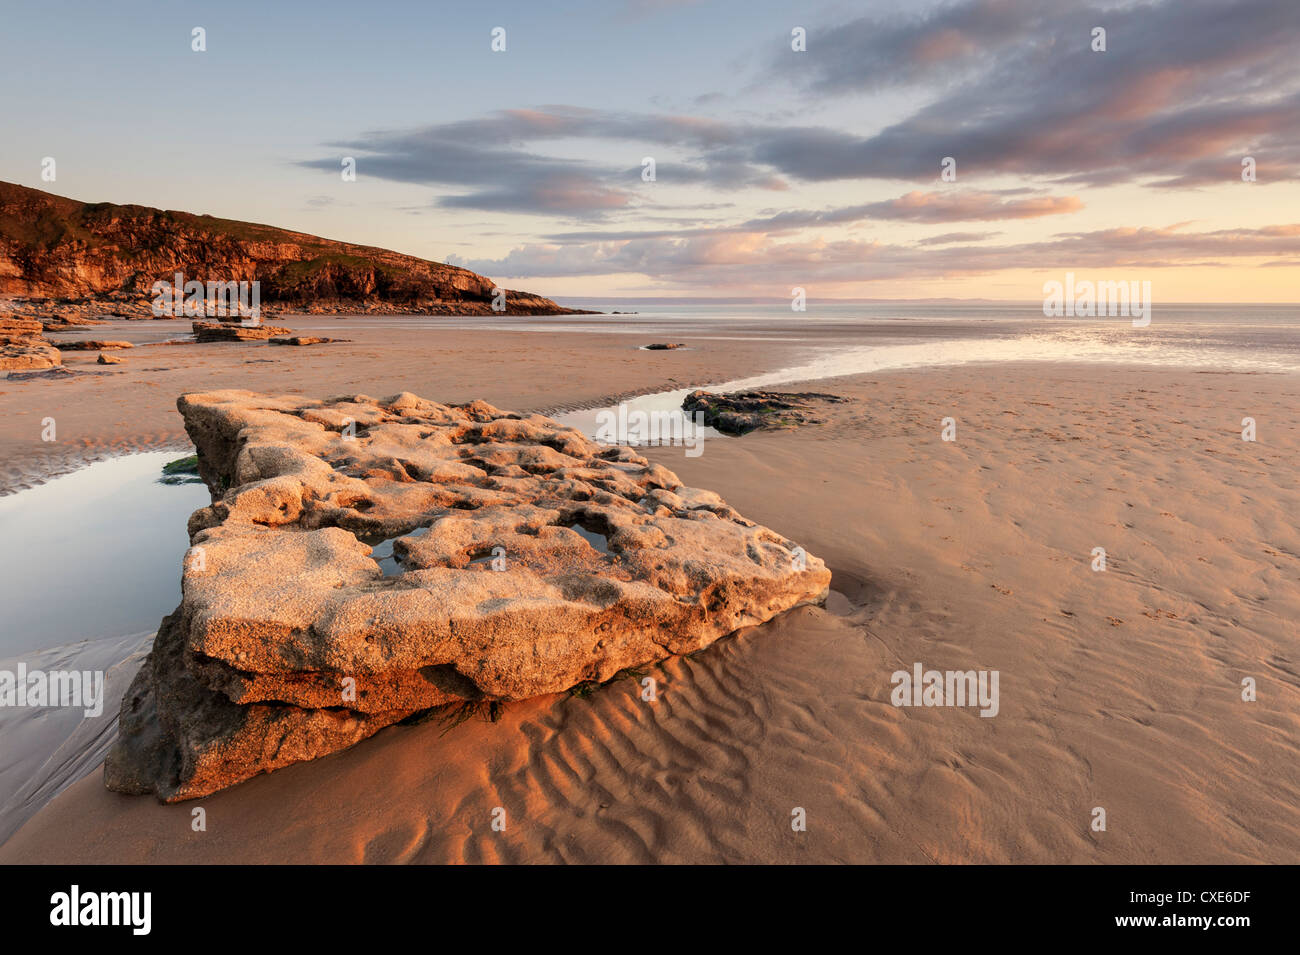 Sunset over rocks with flowing water at Dunraven Bay, Southerndown, Wales Stock Photo